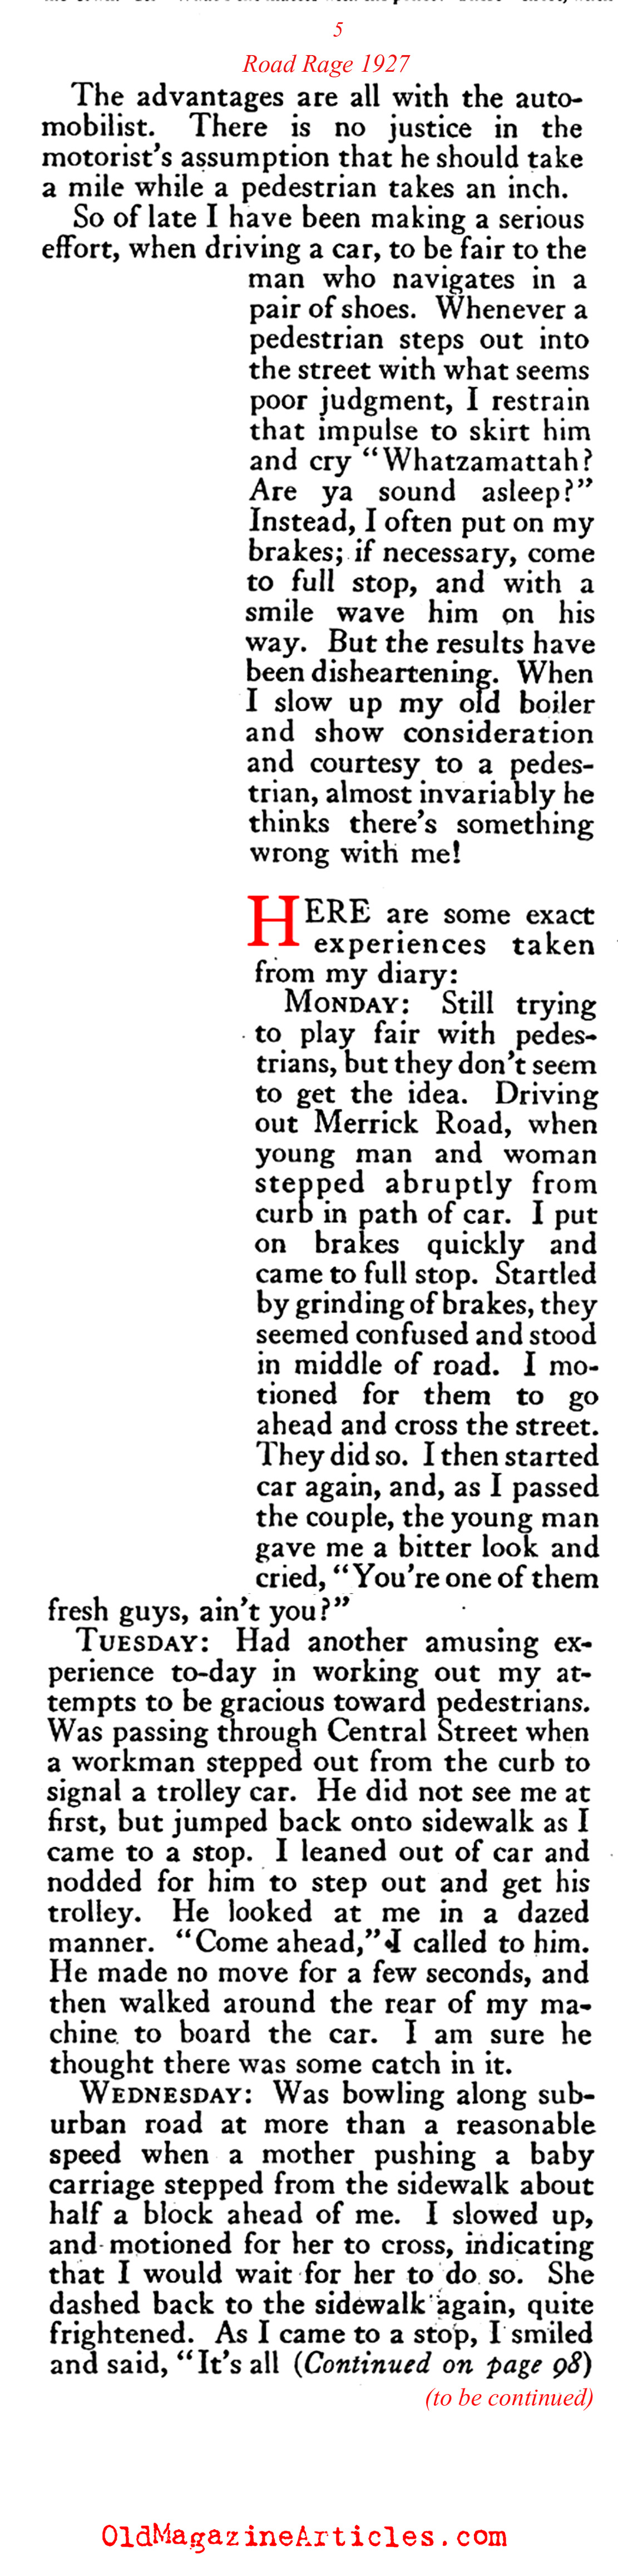 road rage essay 1920s road rage magazine article road rage 1920s road rage the american magazine 1927